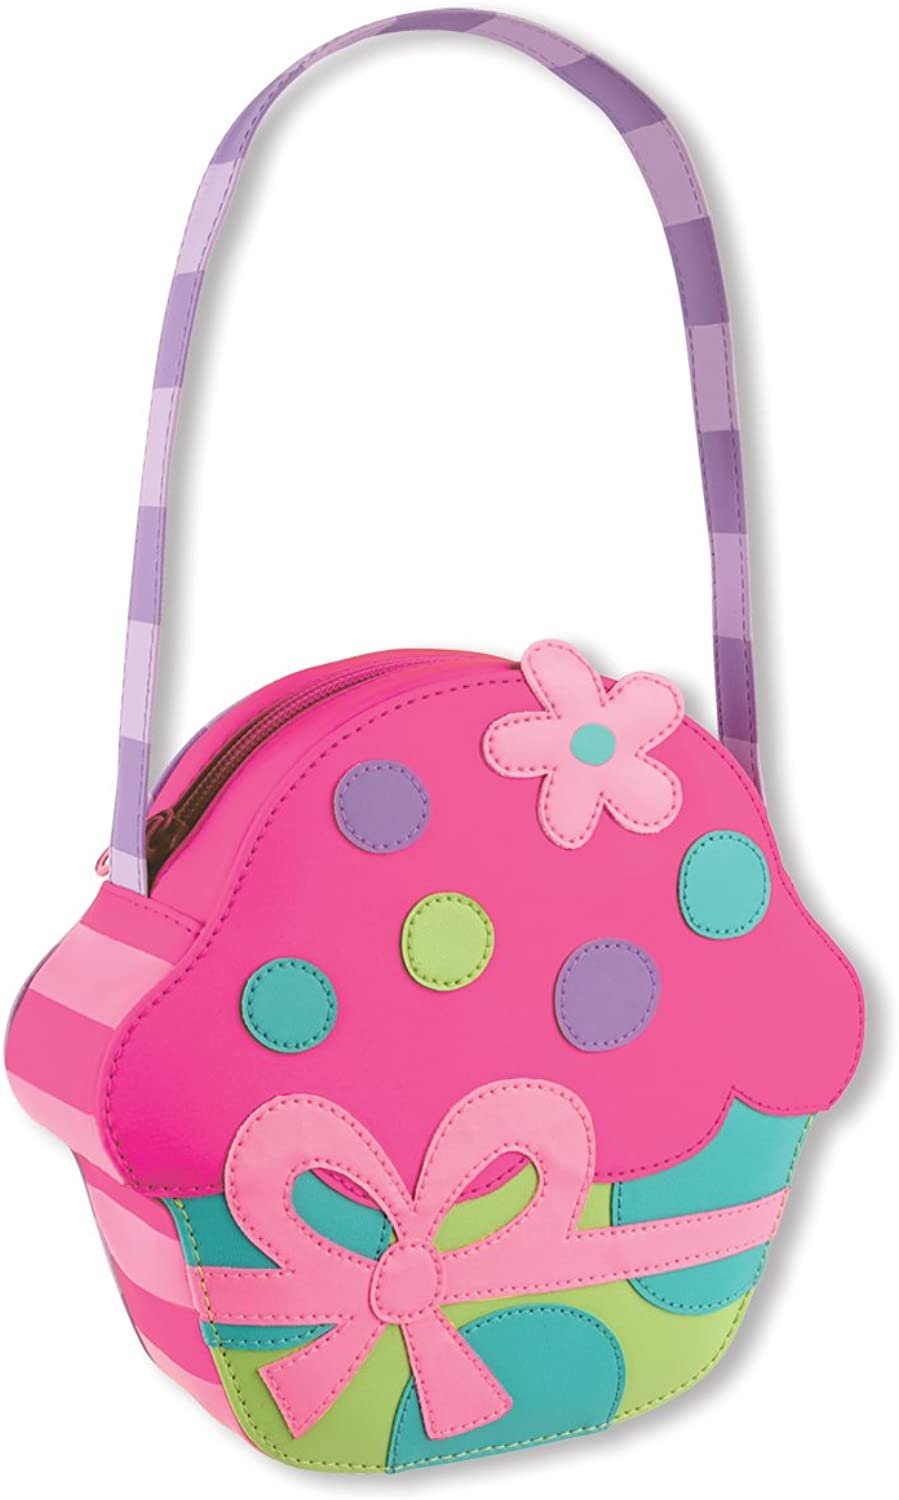 Stephen Joseph Cupcake Purse  Little Girls Purses